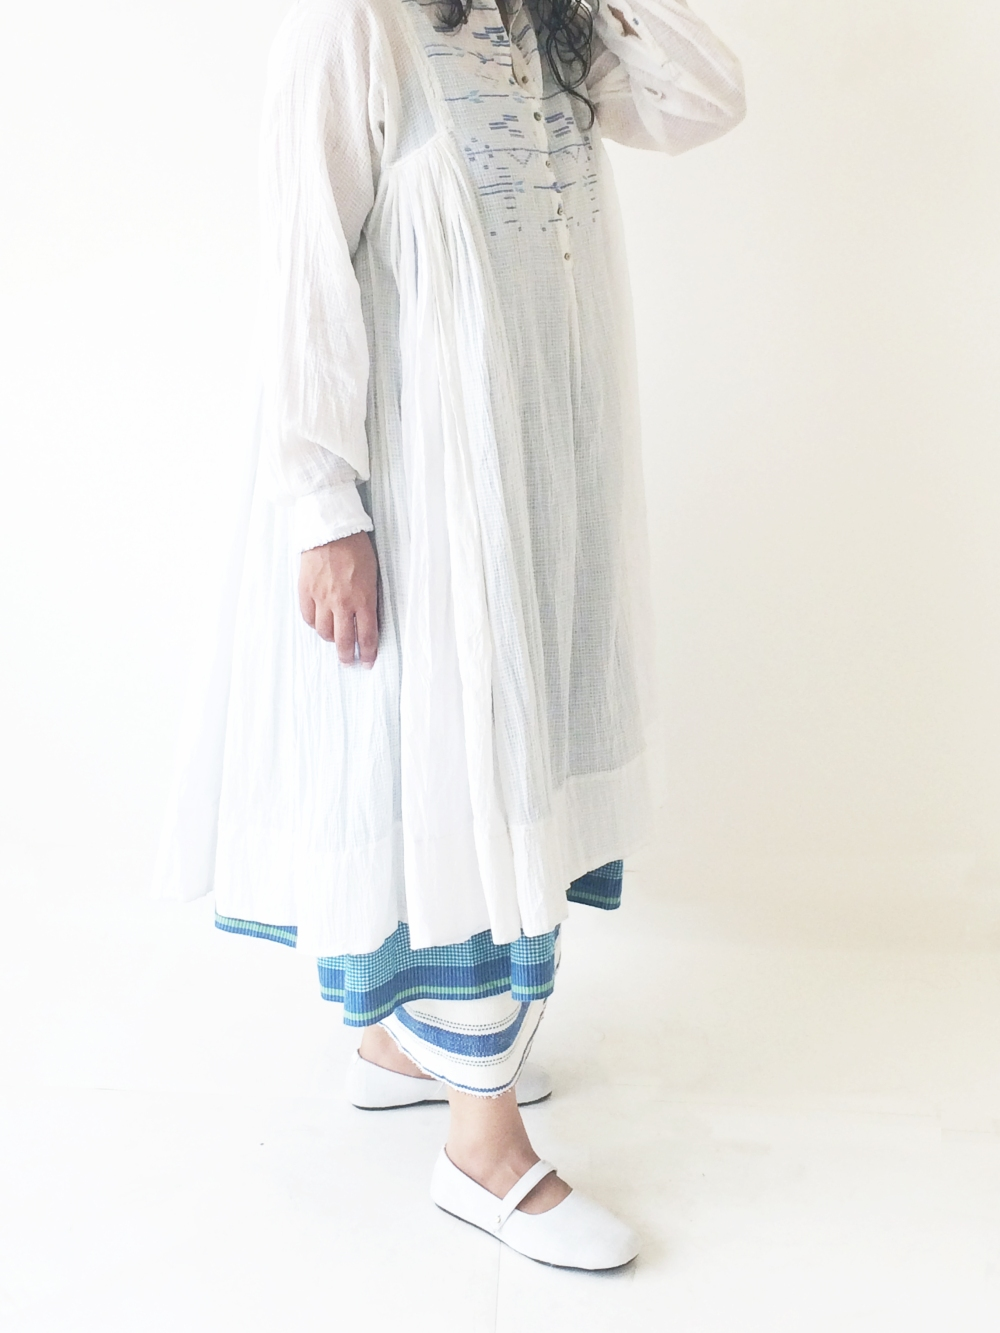 SS16_catalogue_images_11